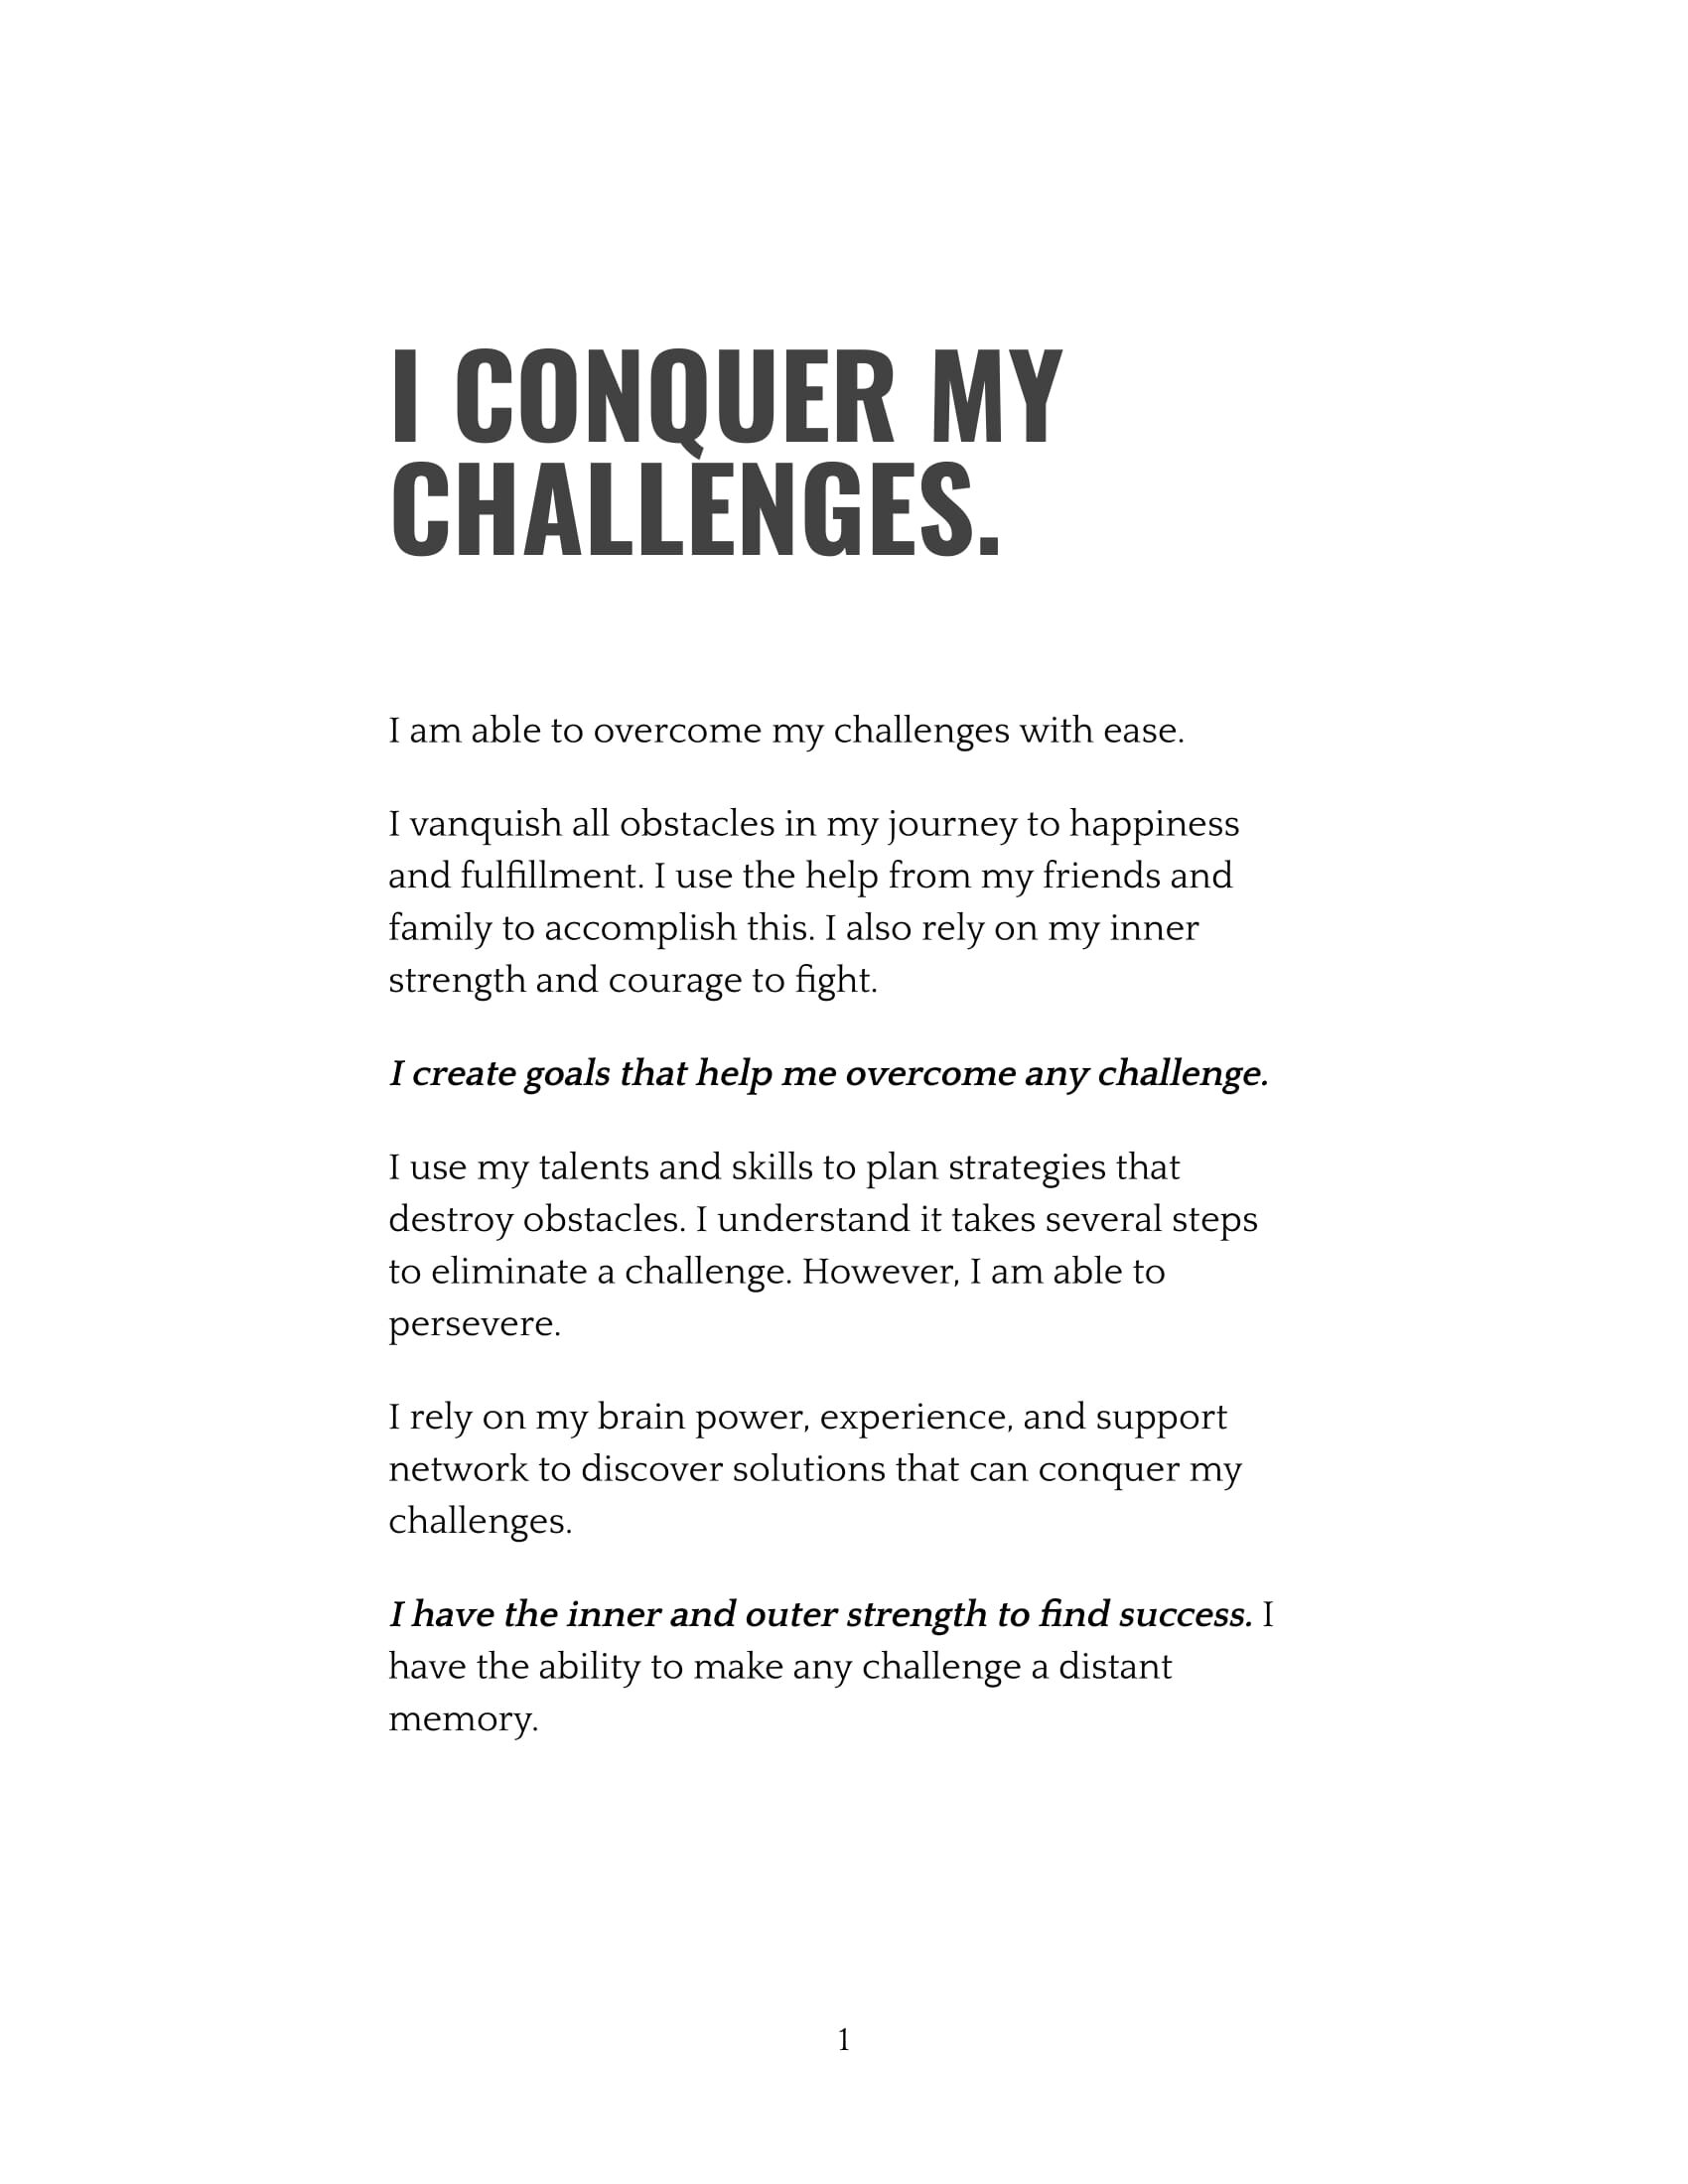 I Conquer My Challenges-1.jpg